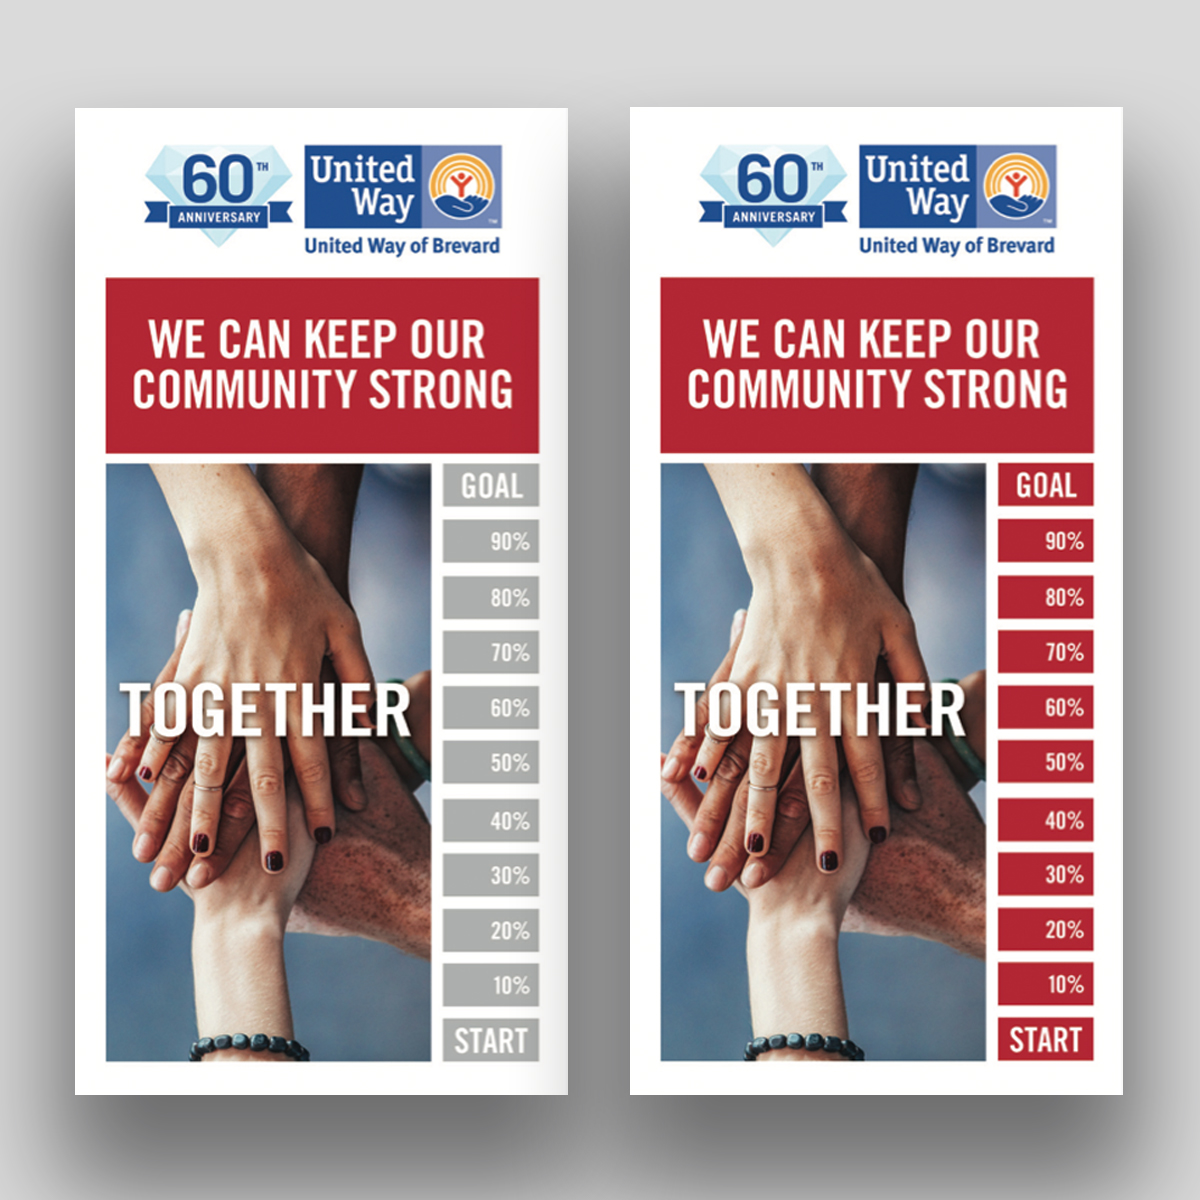 United way together campaigh thermometer